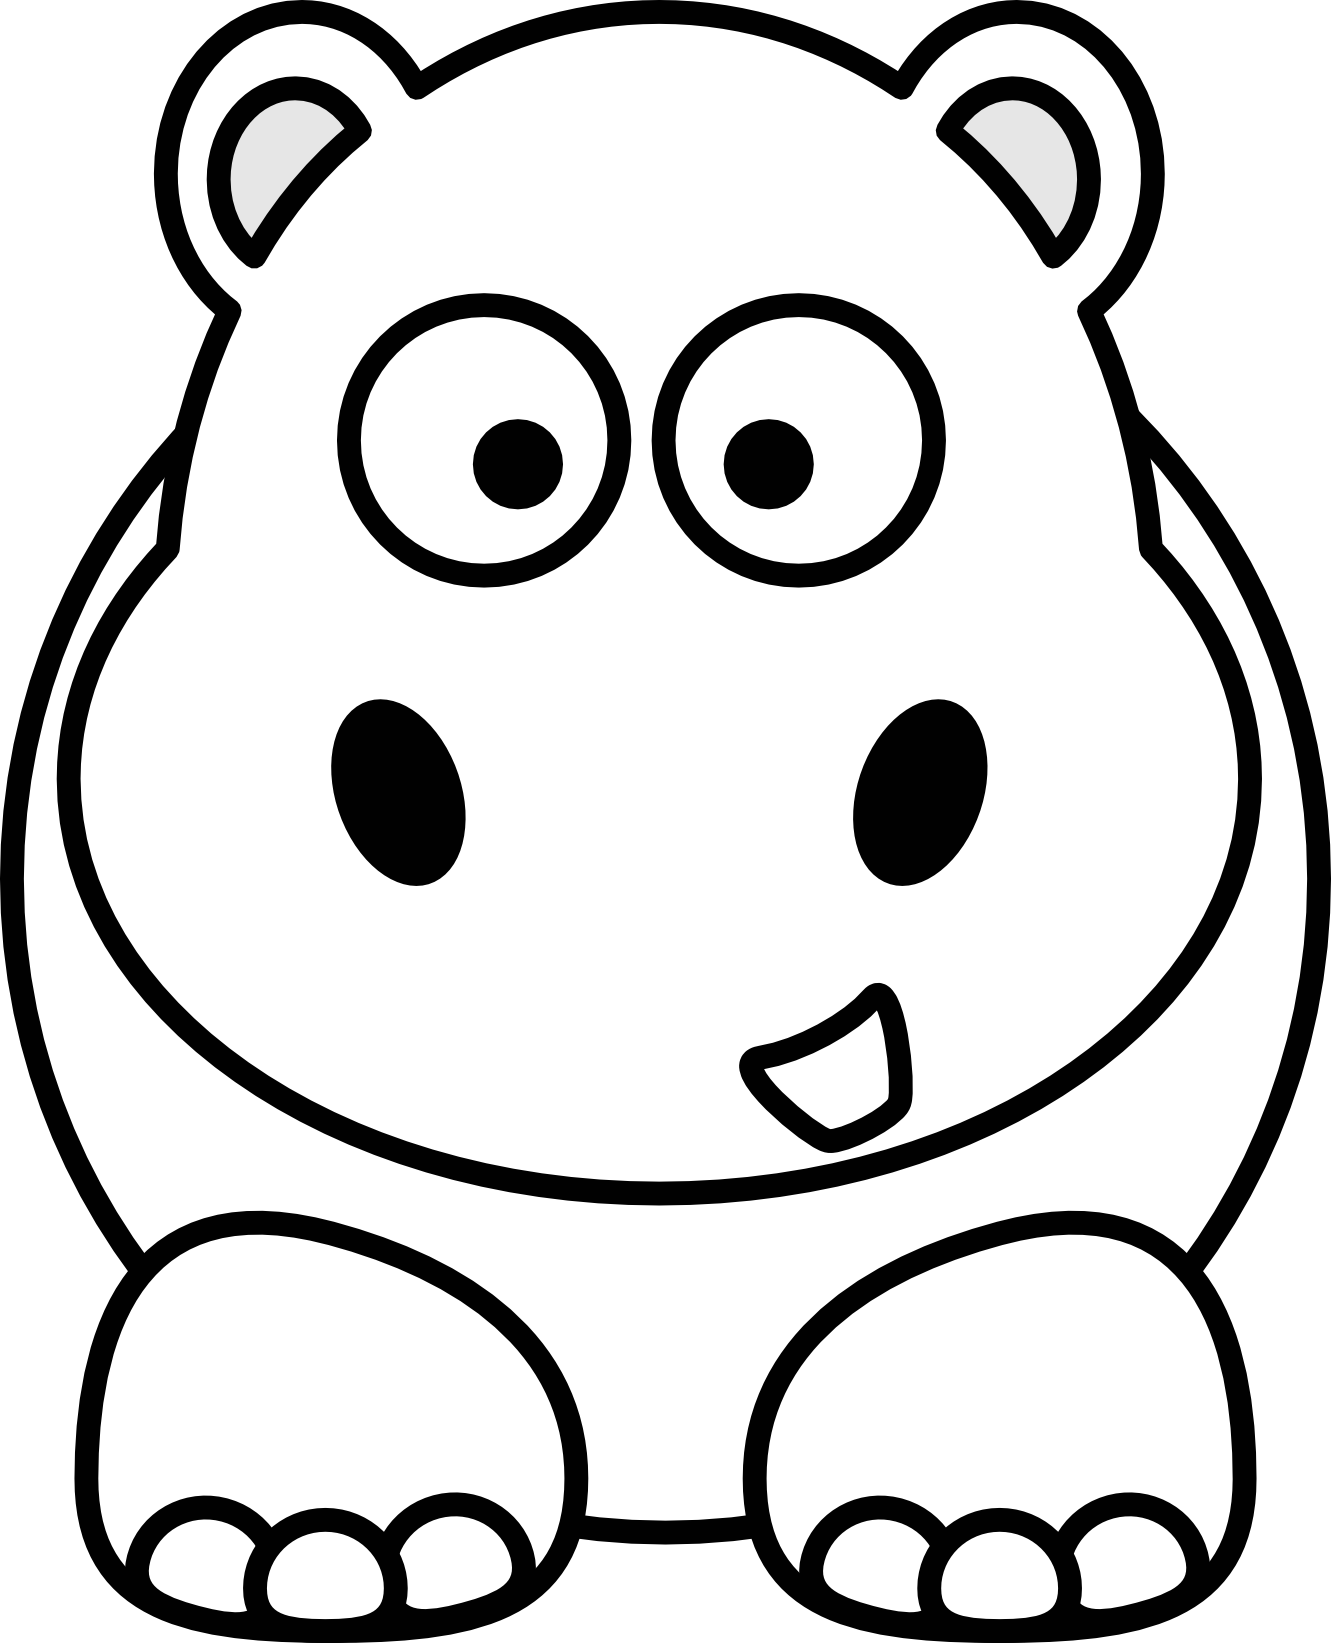 Line Drawings Of Cute Animals : Animal clipart black and white panda free